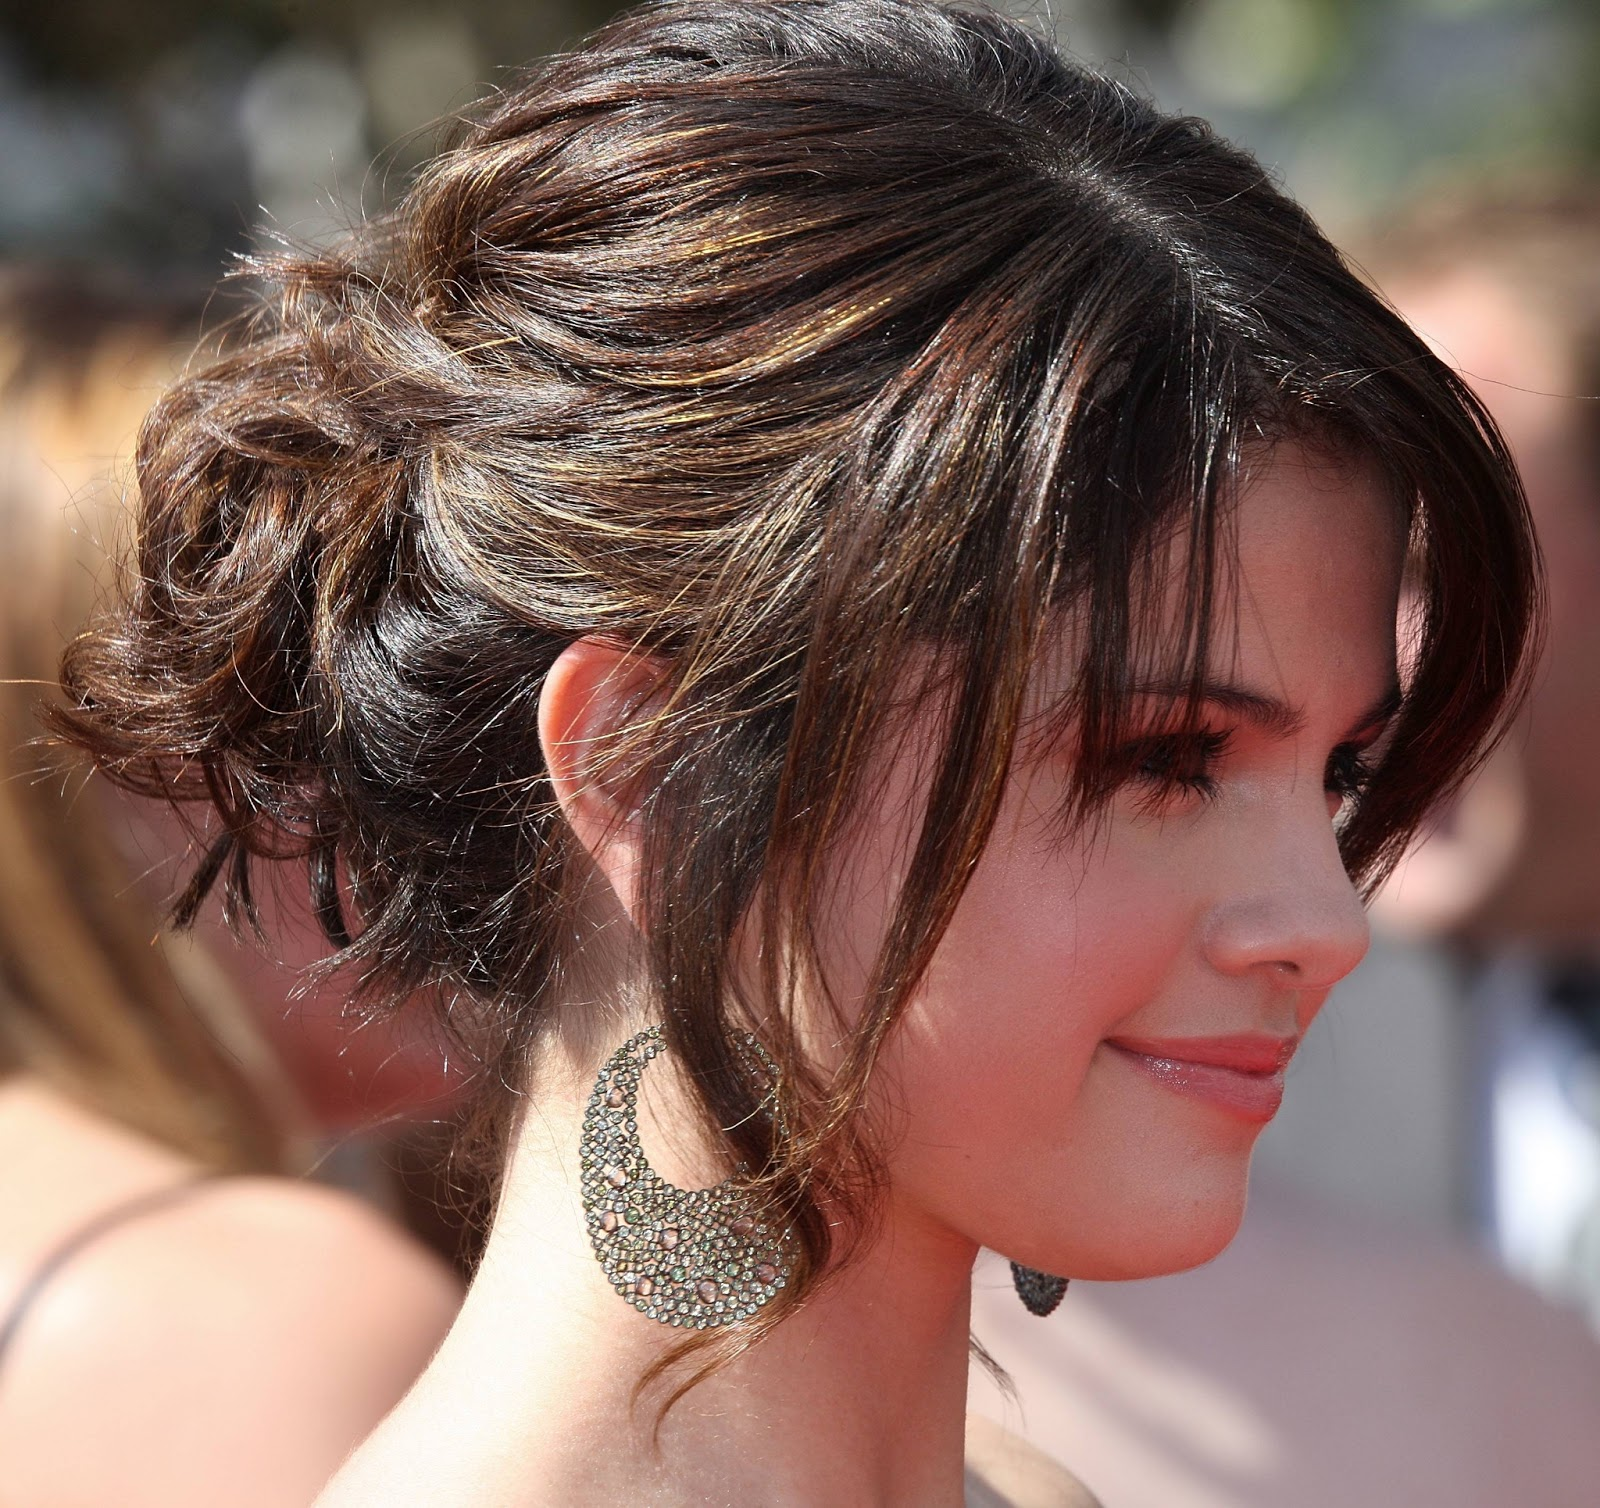 Stylish Prom Hairstyles For Girls  Haircuts Gallery 2013